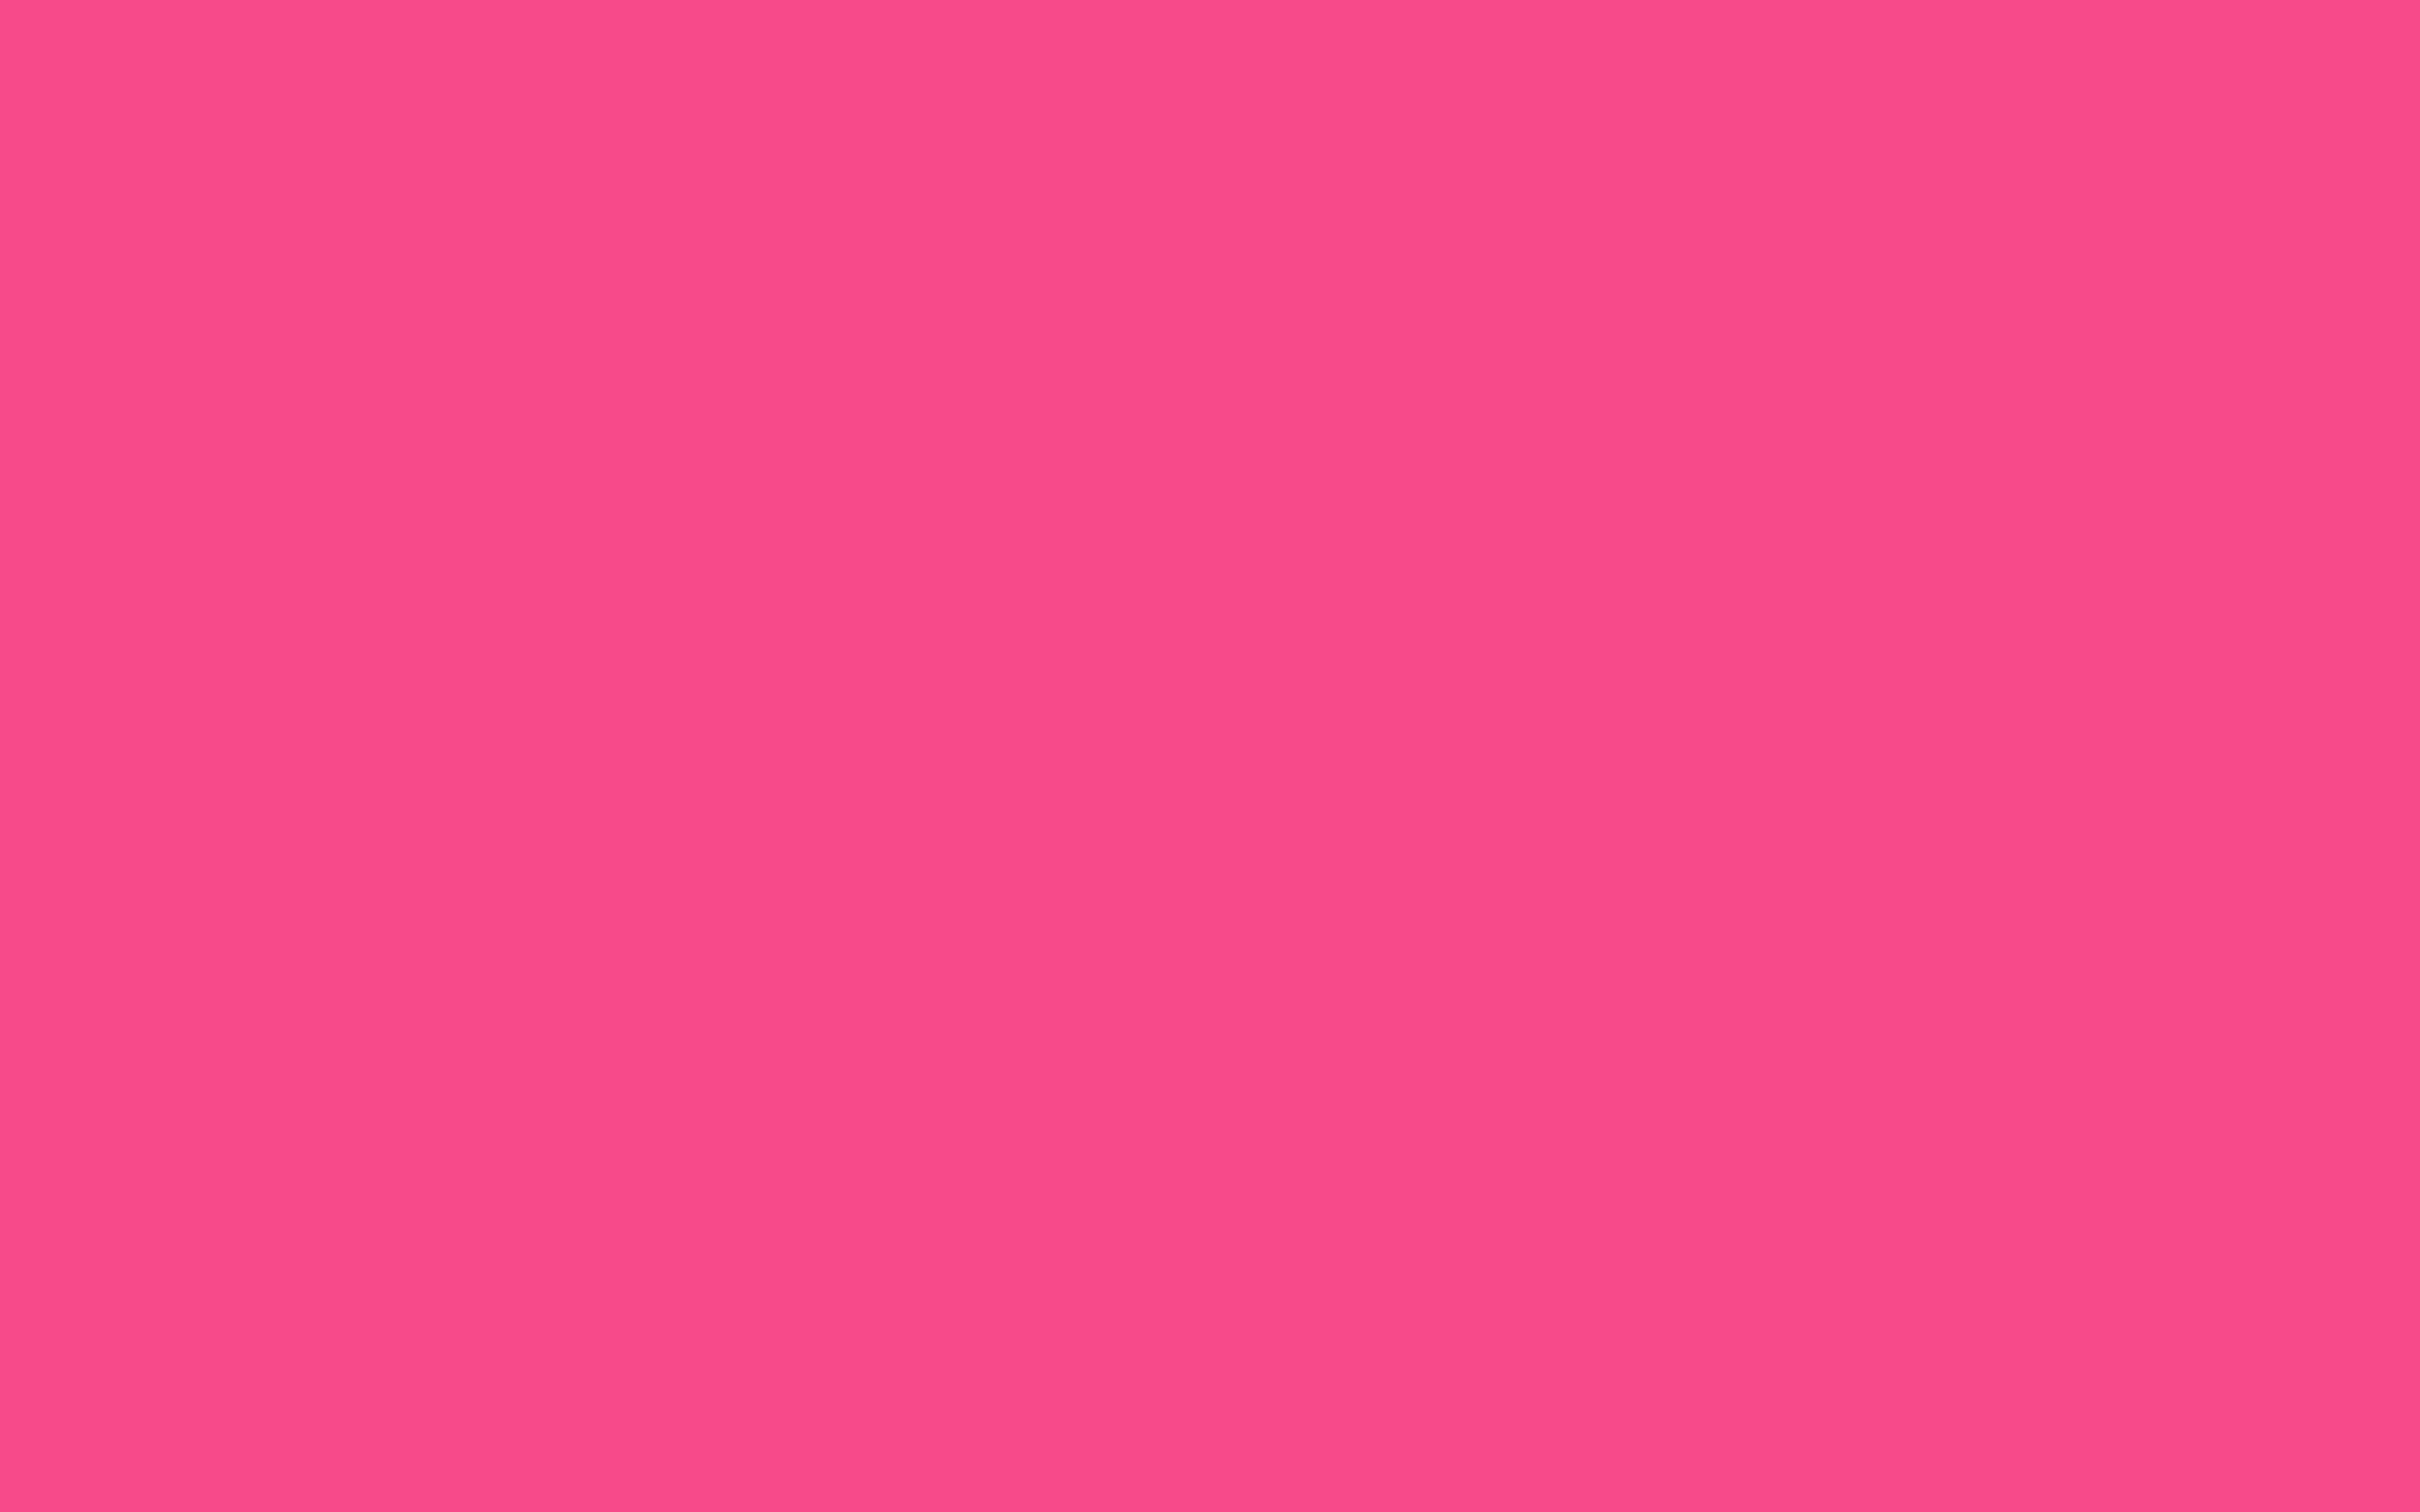 2560x1600 French Rose Solid Color Background